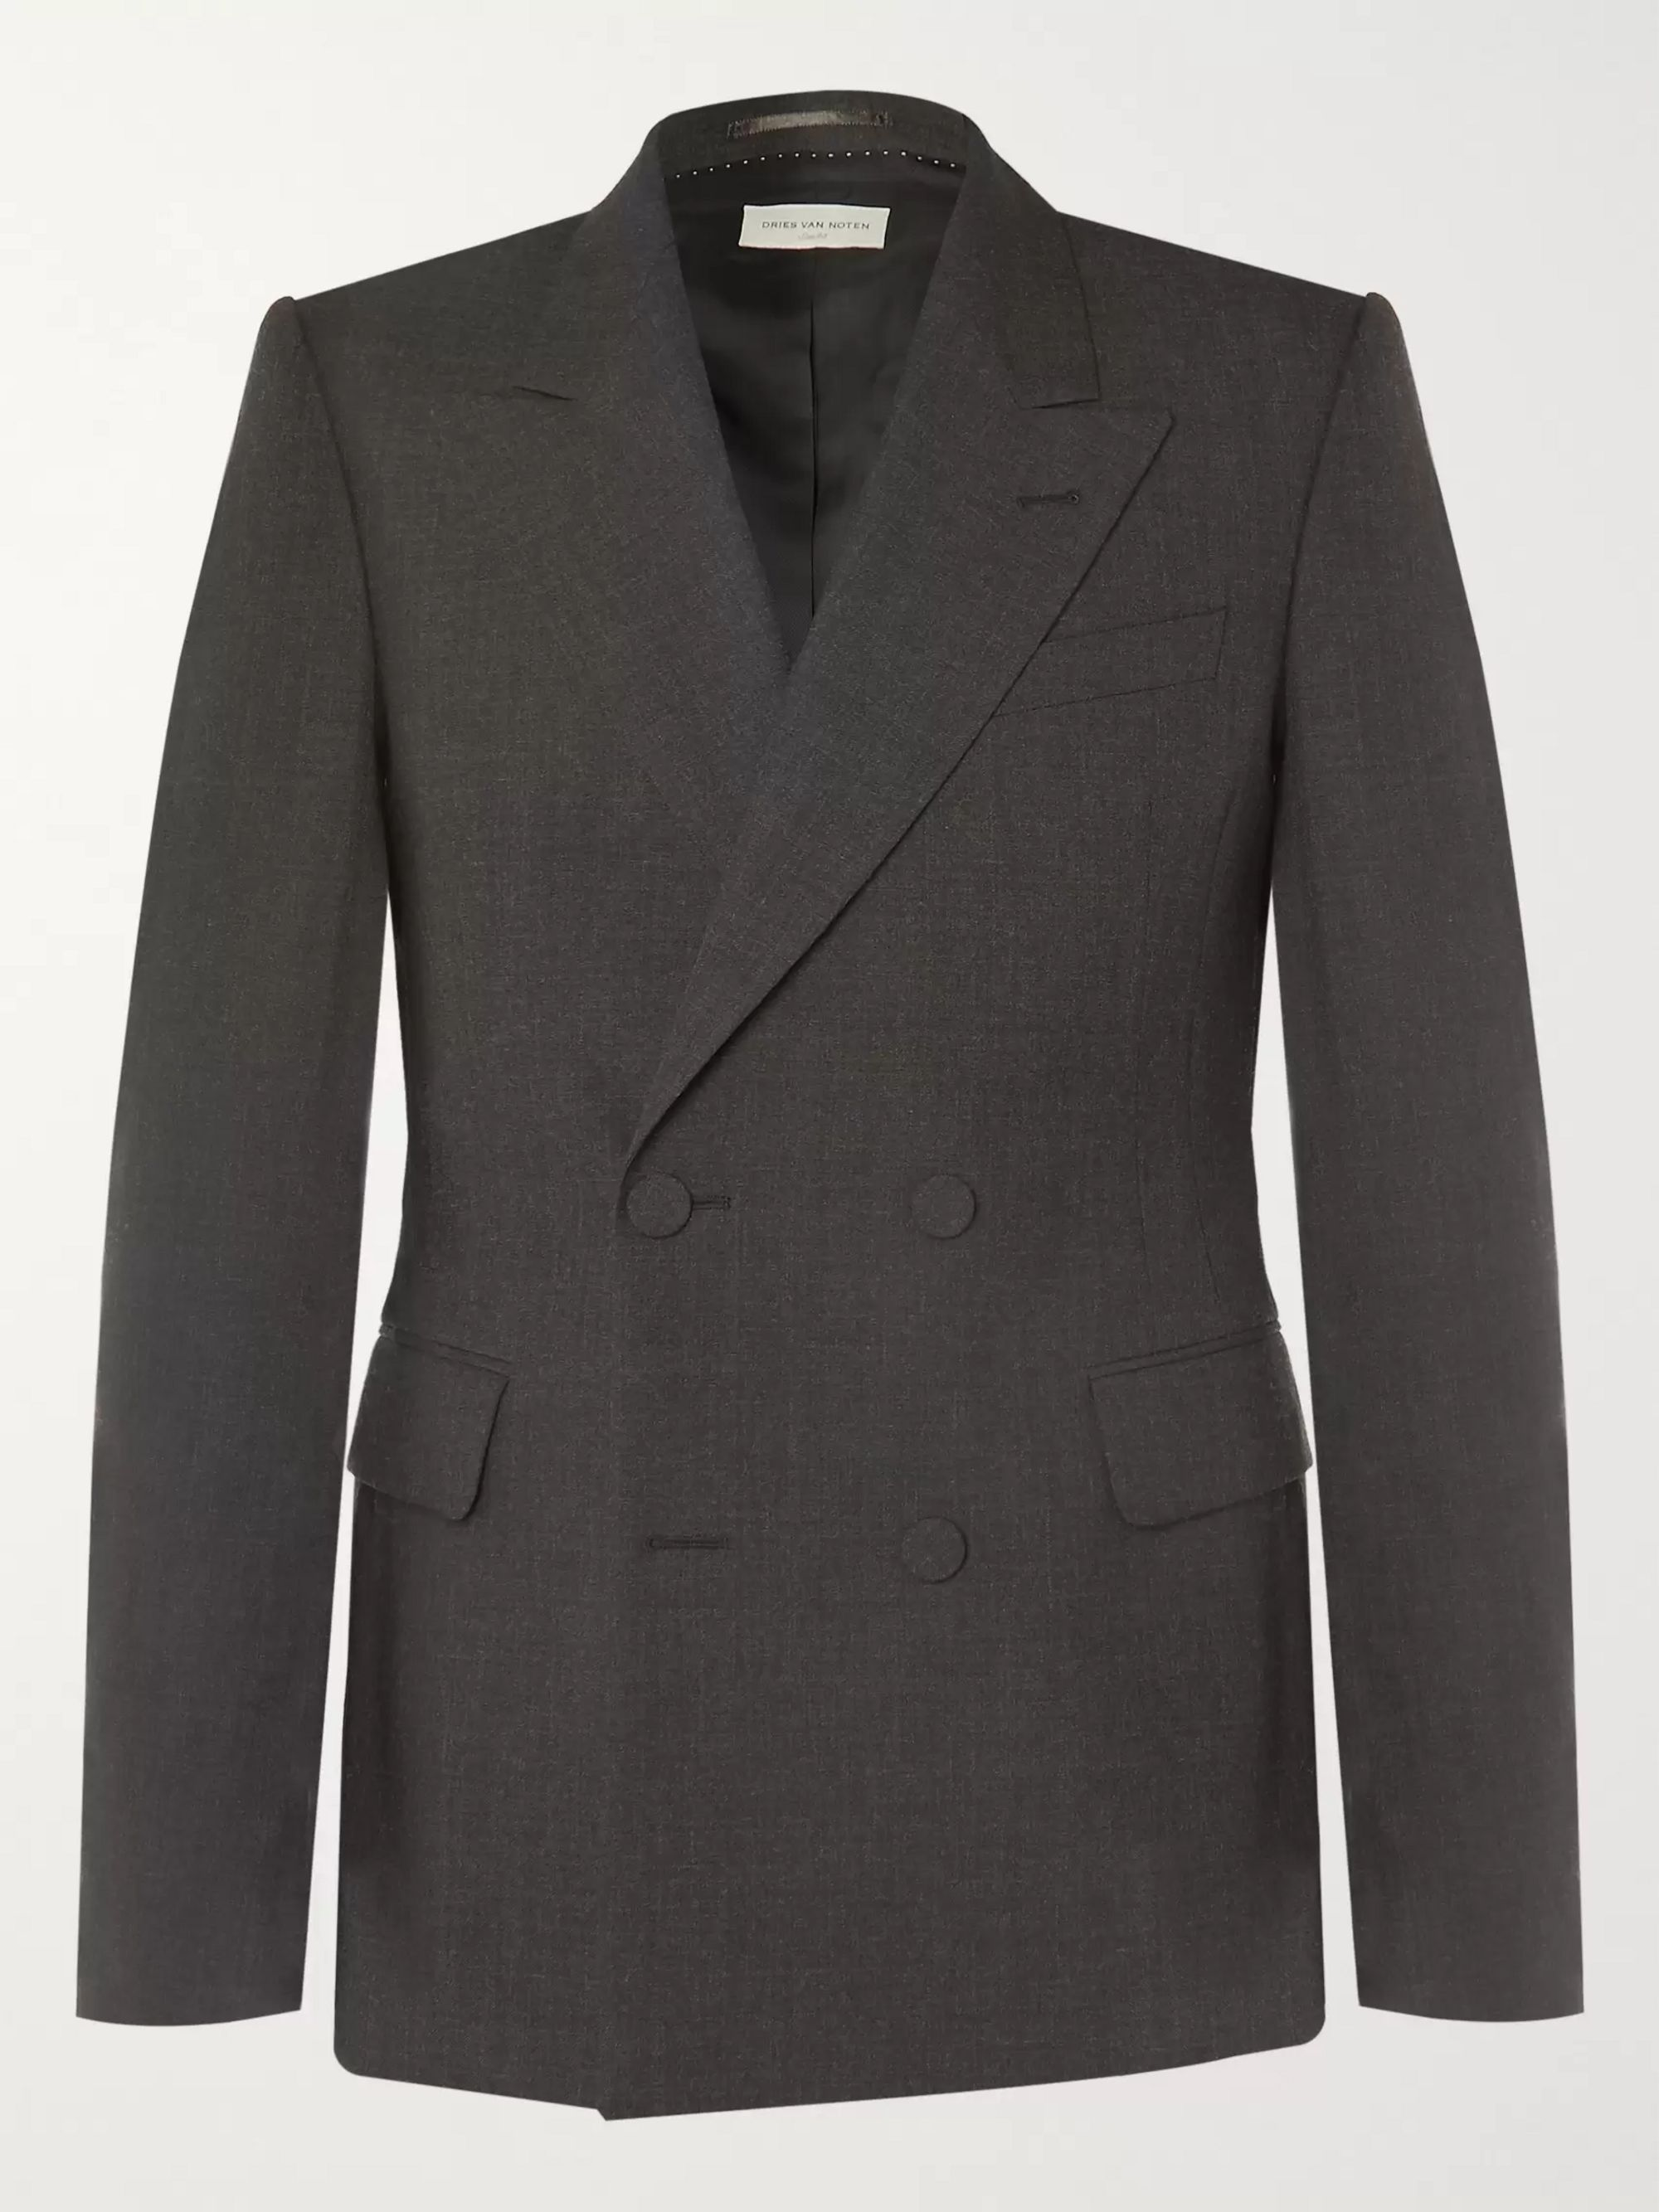 Anthracite Double Breasted Wool Blazer by Dries Van Noten